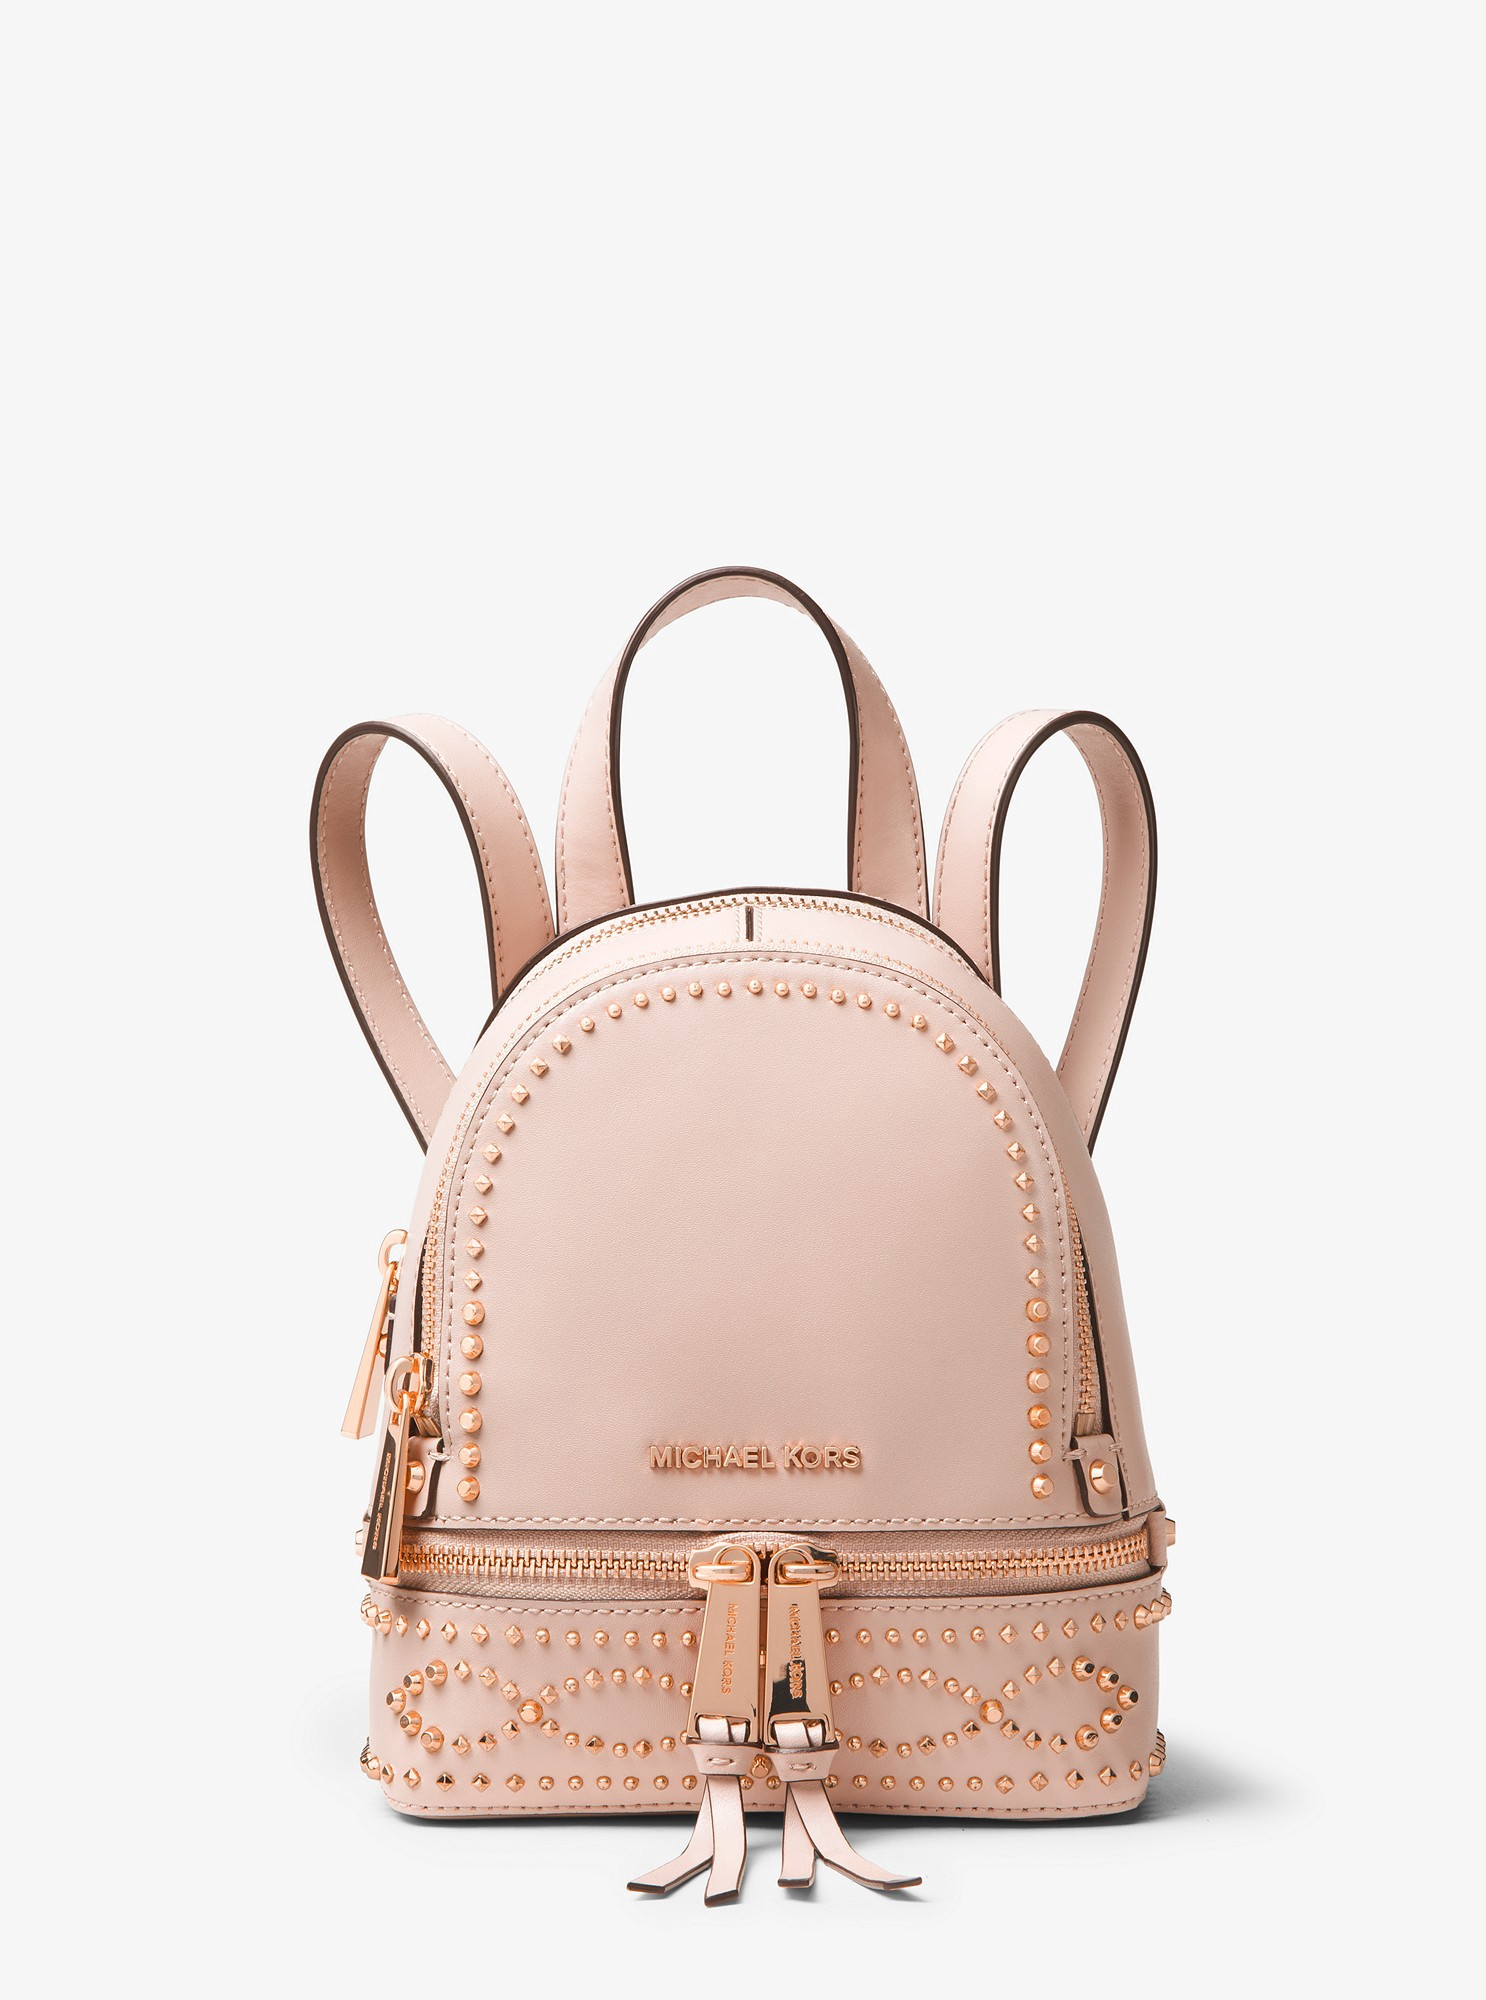 c2228dc7cf7b Michael Kors Rhea Mini Studded Leather Backpack - Soft Pink ...